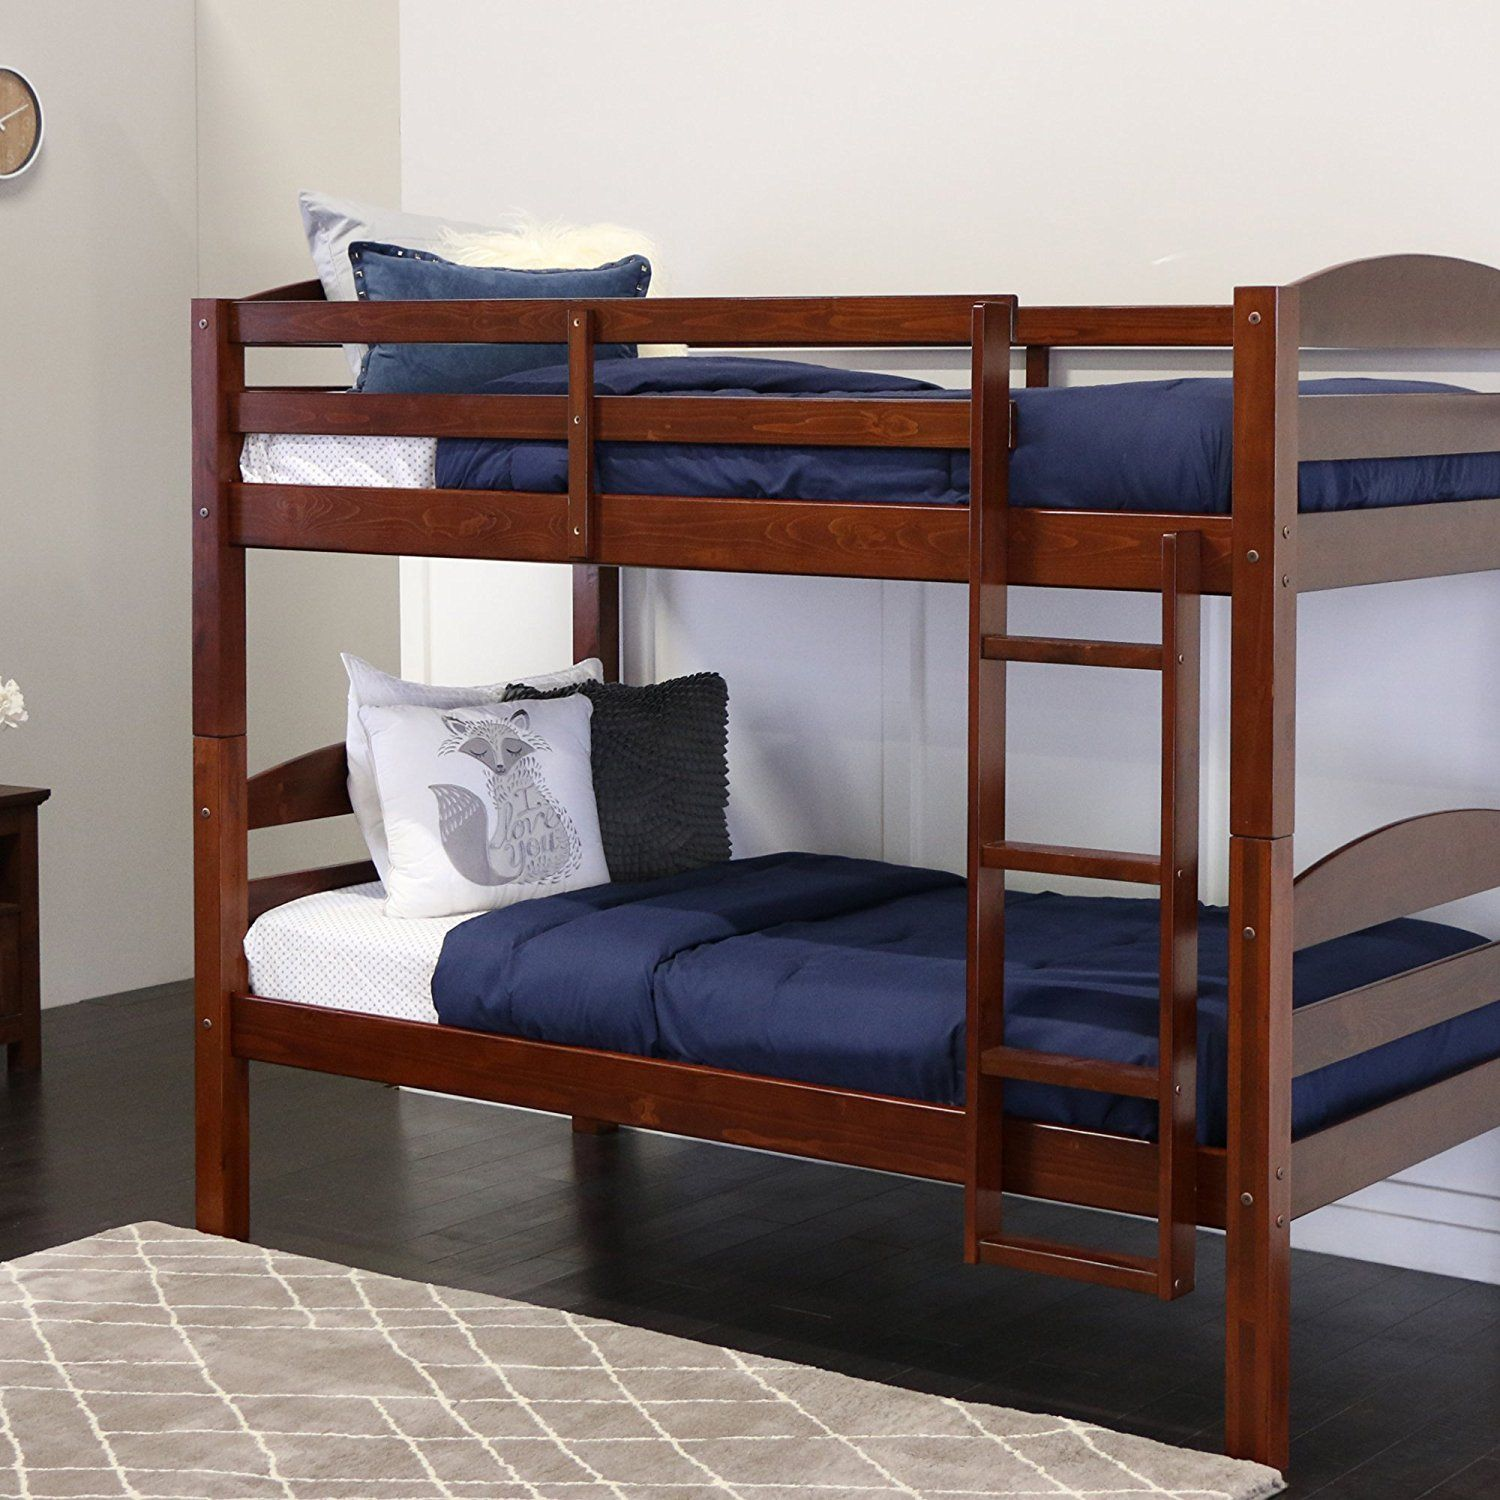 Pin By Neby On Bedroom Apartments Ideas Bunk Beds With Stairs